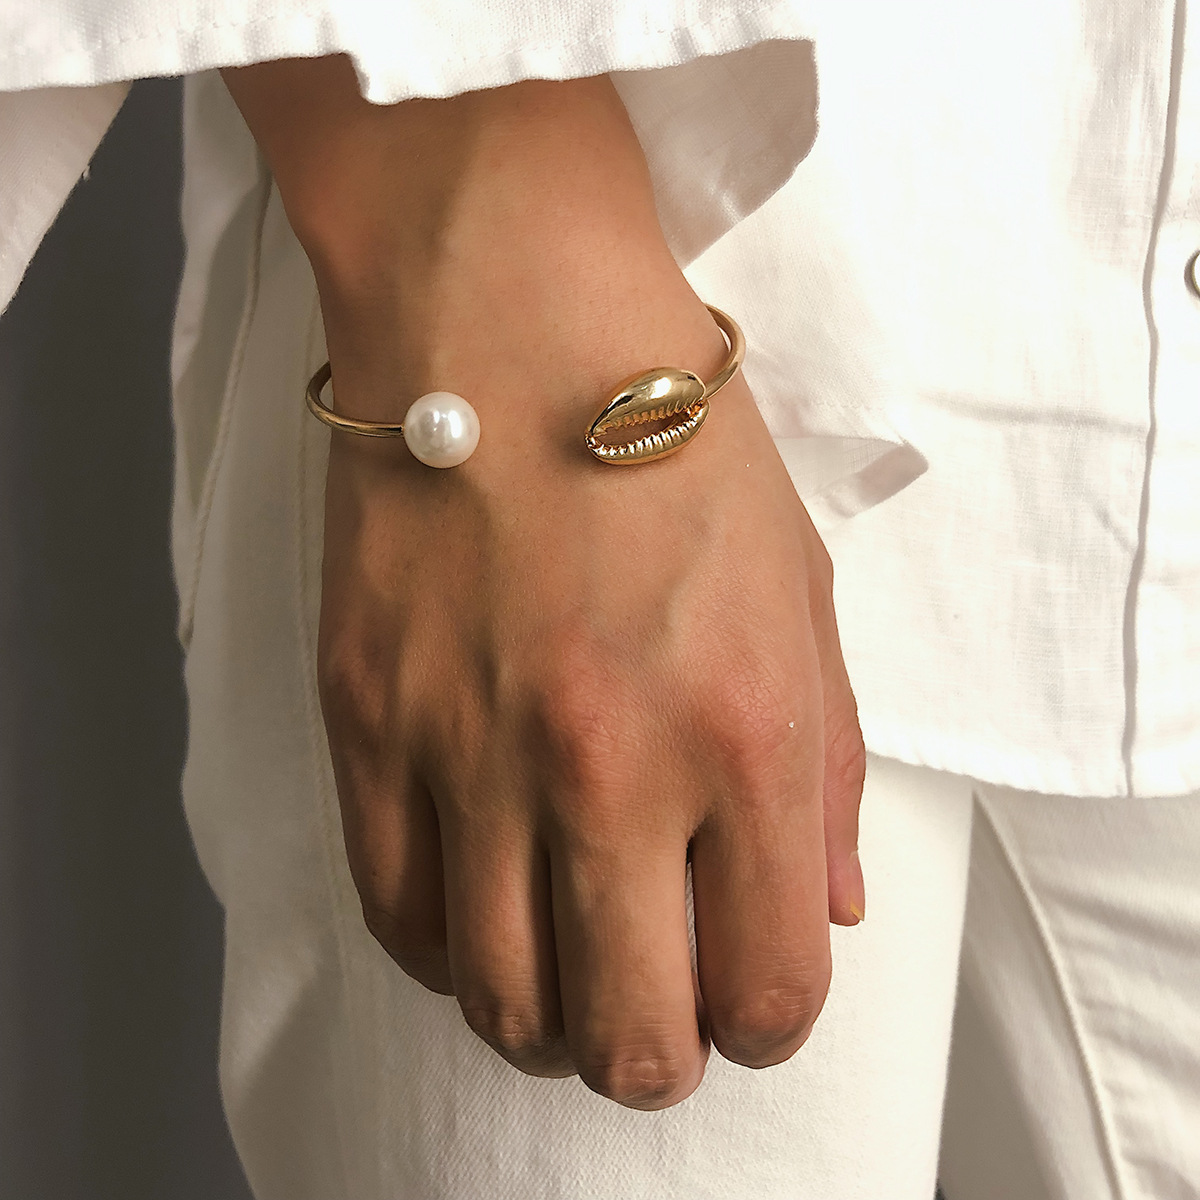 Gold Color Cowrie Shell Bracelets for Women Pearl Beads Charm Cuff Opening Bracelet Bohemian Beach Jewelry Mujer Pulseras 2